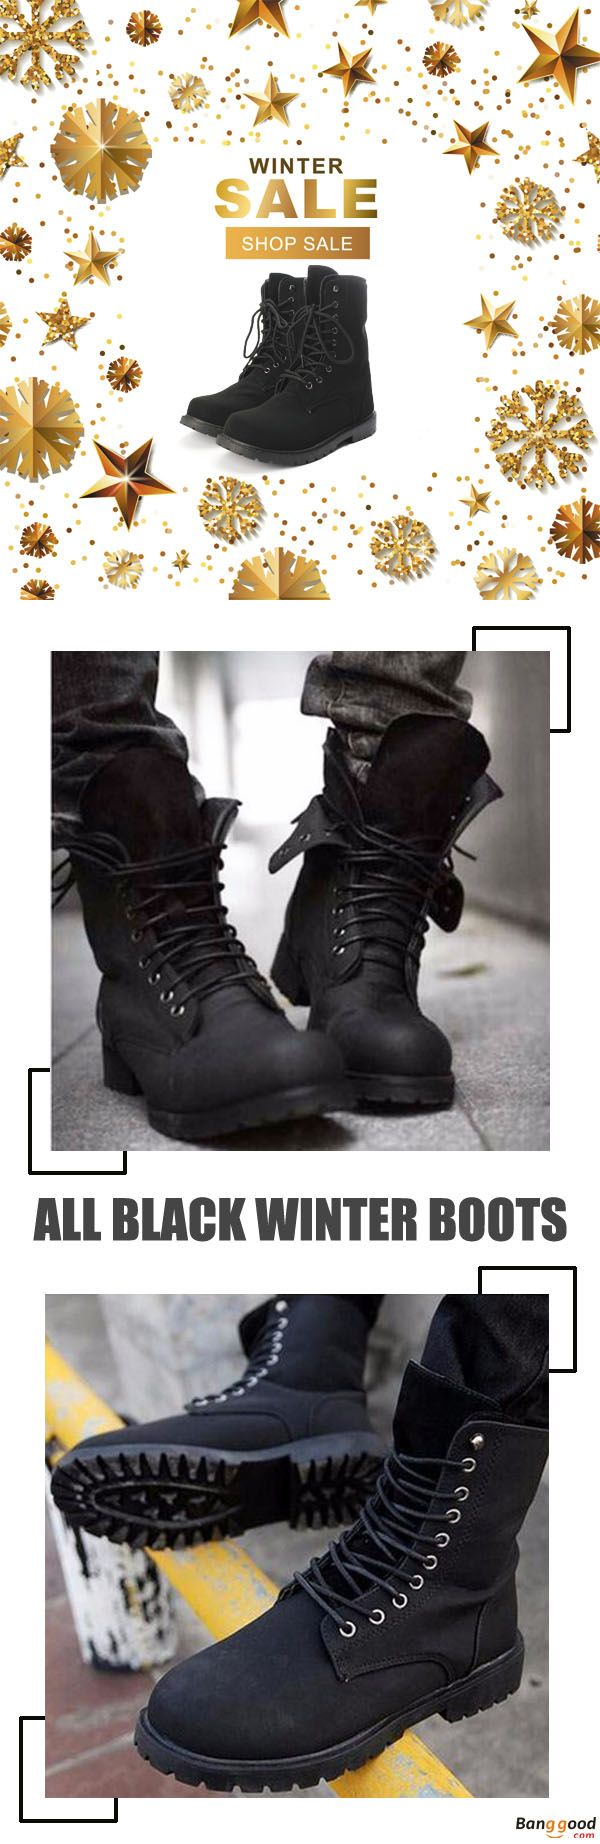 US$37.99 + Free shipping. Winter Boots, Men's Boots, British Style Boots, Fashion Boots, Retro Boots, Combat Riding Shoes, Motorcycle Style. Warm and Soft. Meet the Best Boots This Winter. Repin If You Like it!